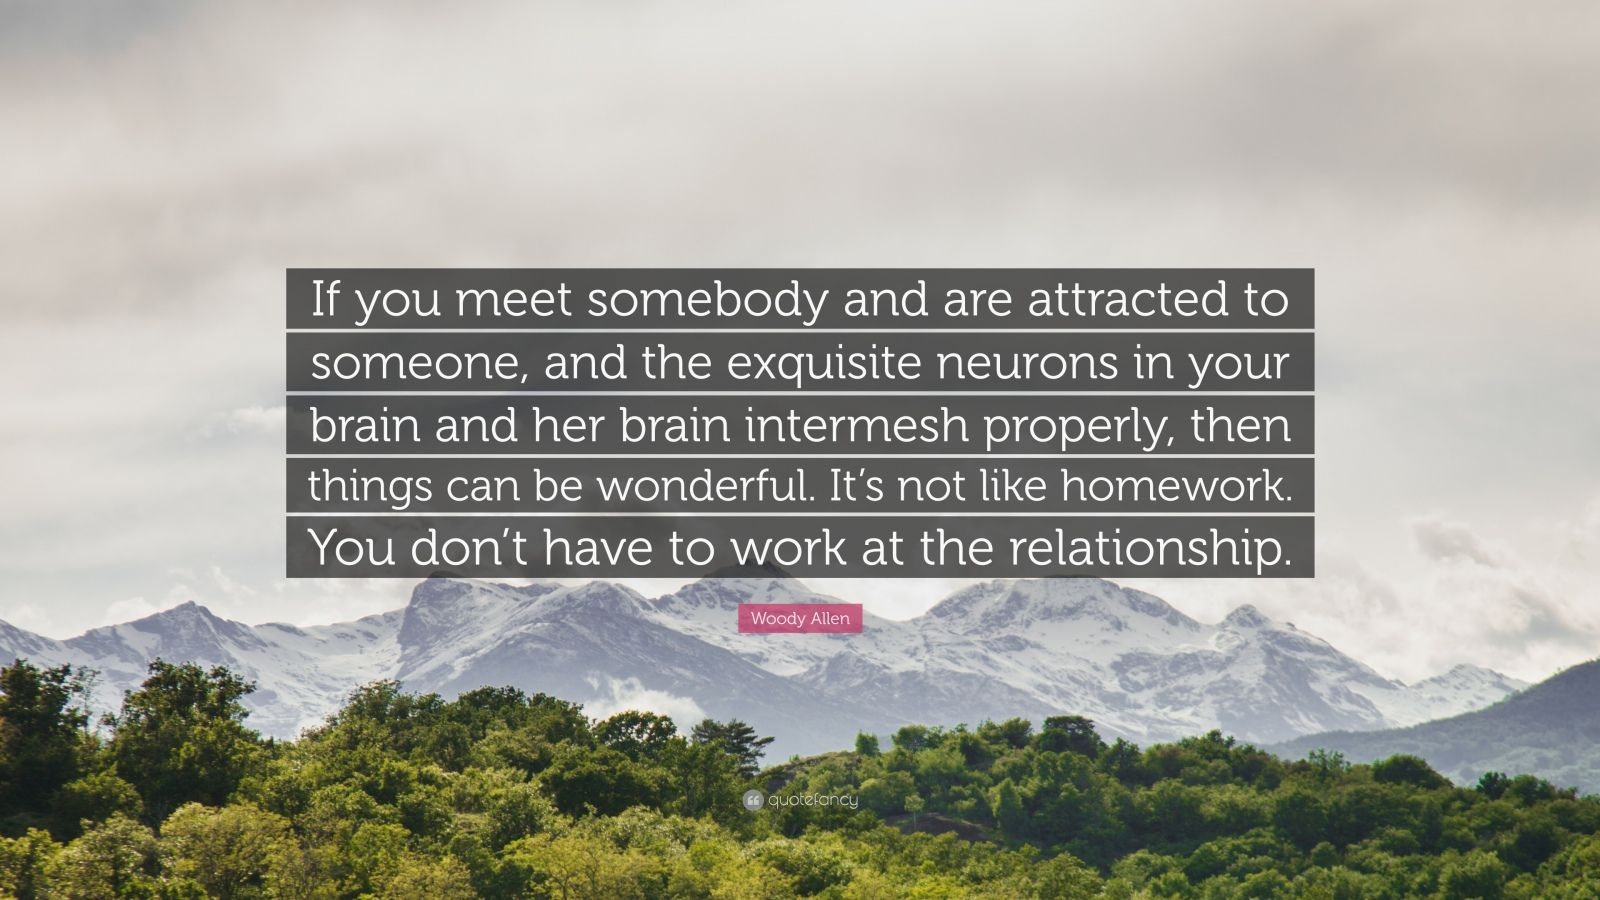 """Woody Allen Quote: """"If you meet somebody and are attracted to someone, and the exquisite neurons in your brain and her brain intermesh properly, then things can be wonderful. It's not like homework. You don't have to work at the relationship."""""""